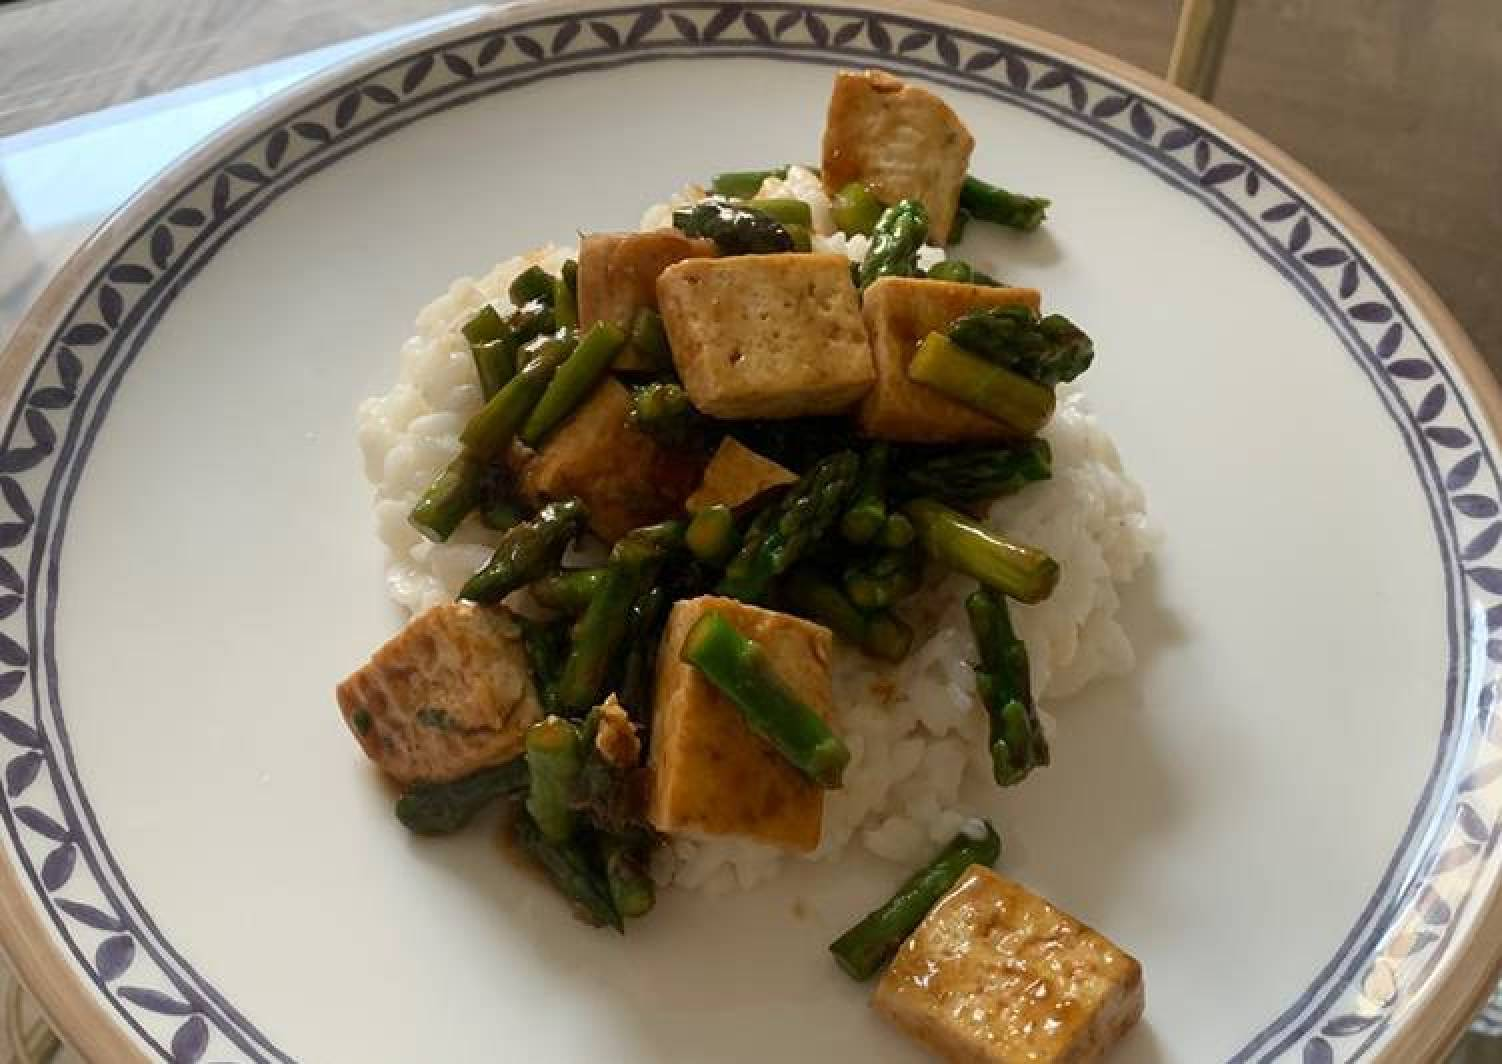 Tofu and Asparagus in Teriyaki sauce